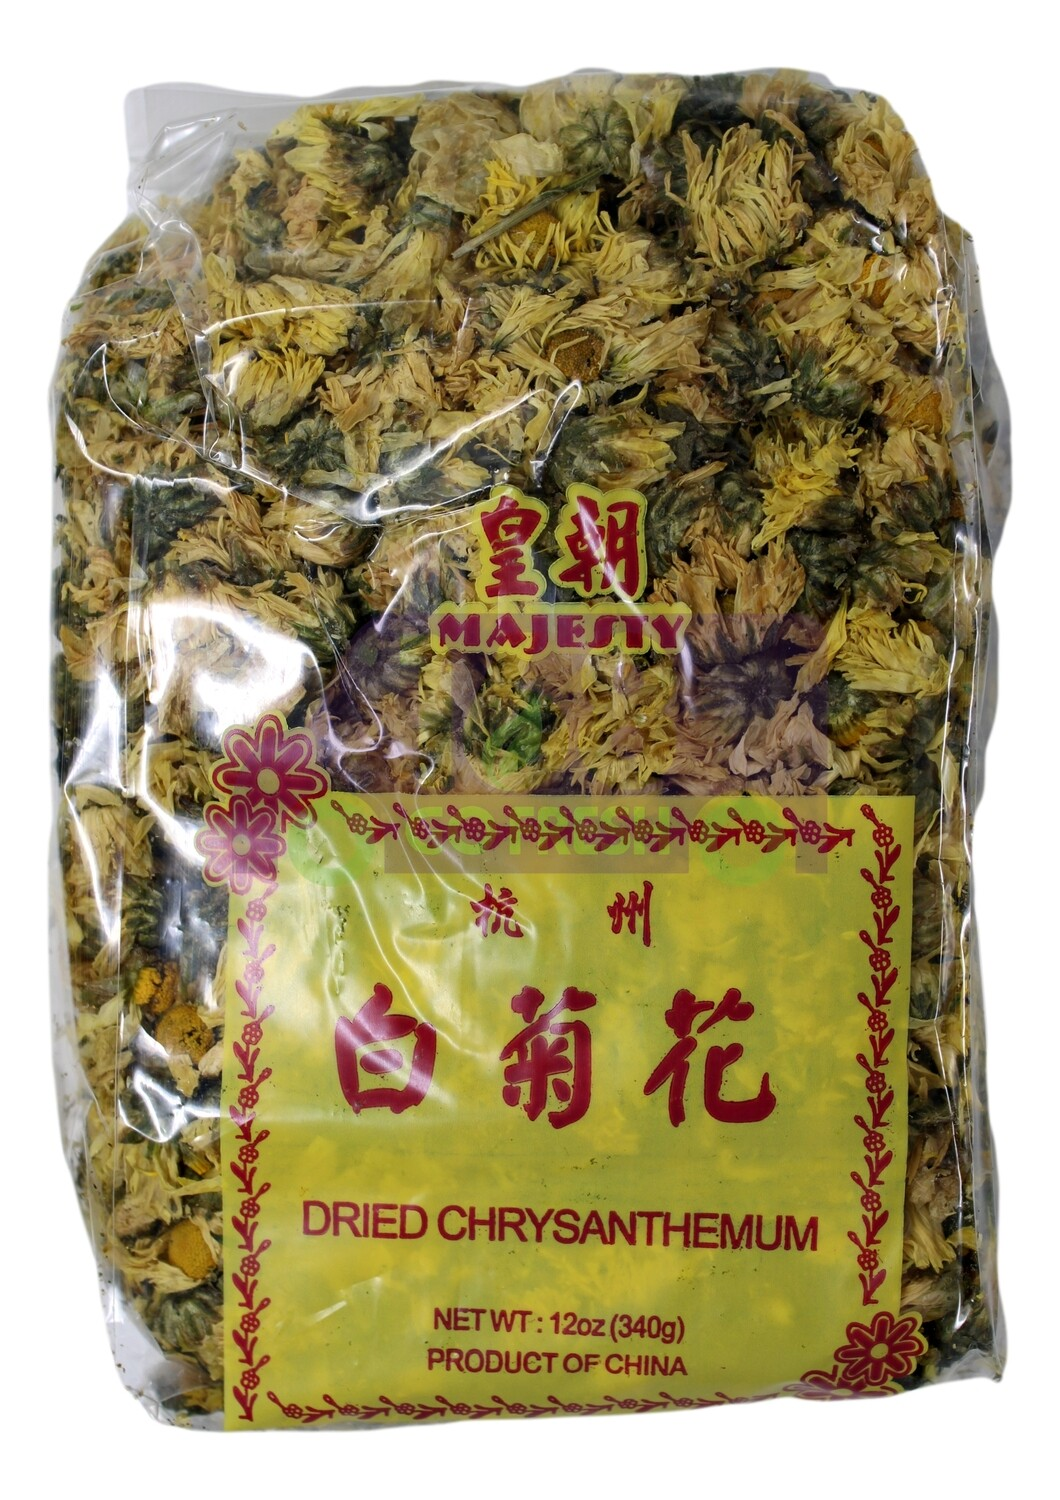 DRIED CHRYSANTHEMUM 皇朝 杭州白菊花(12OZ)